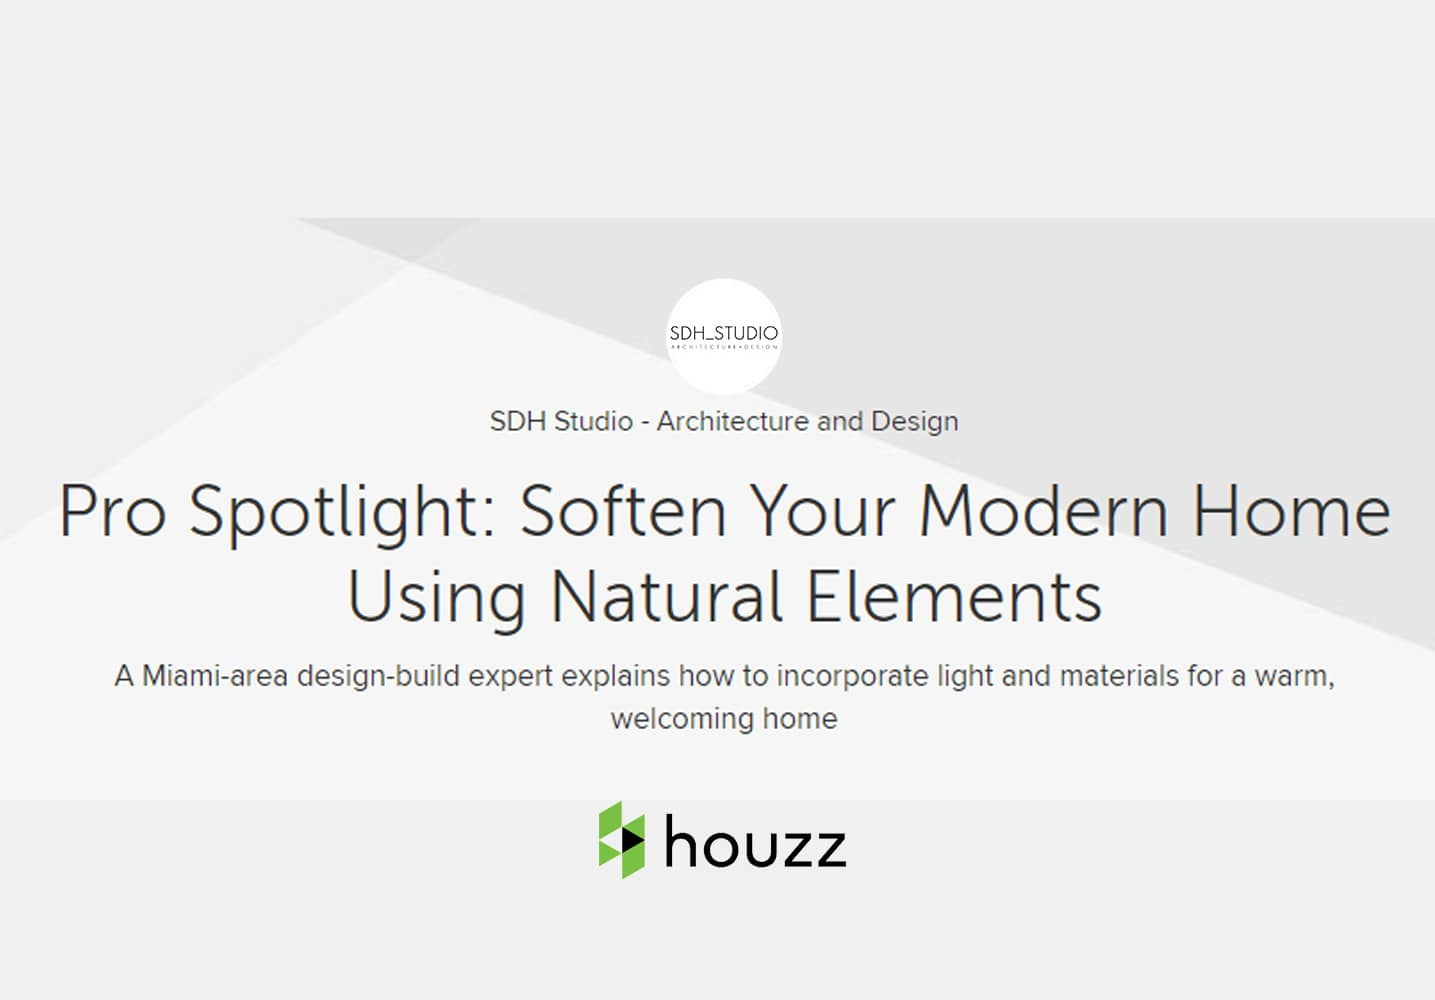 Soften Your Modern Home Using Natural Elements